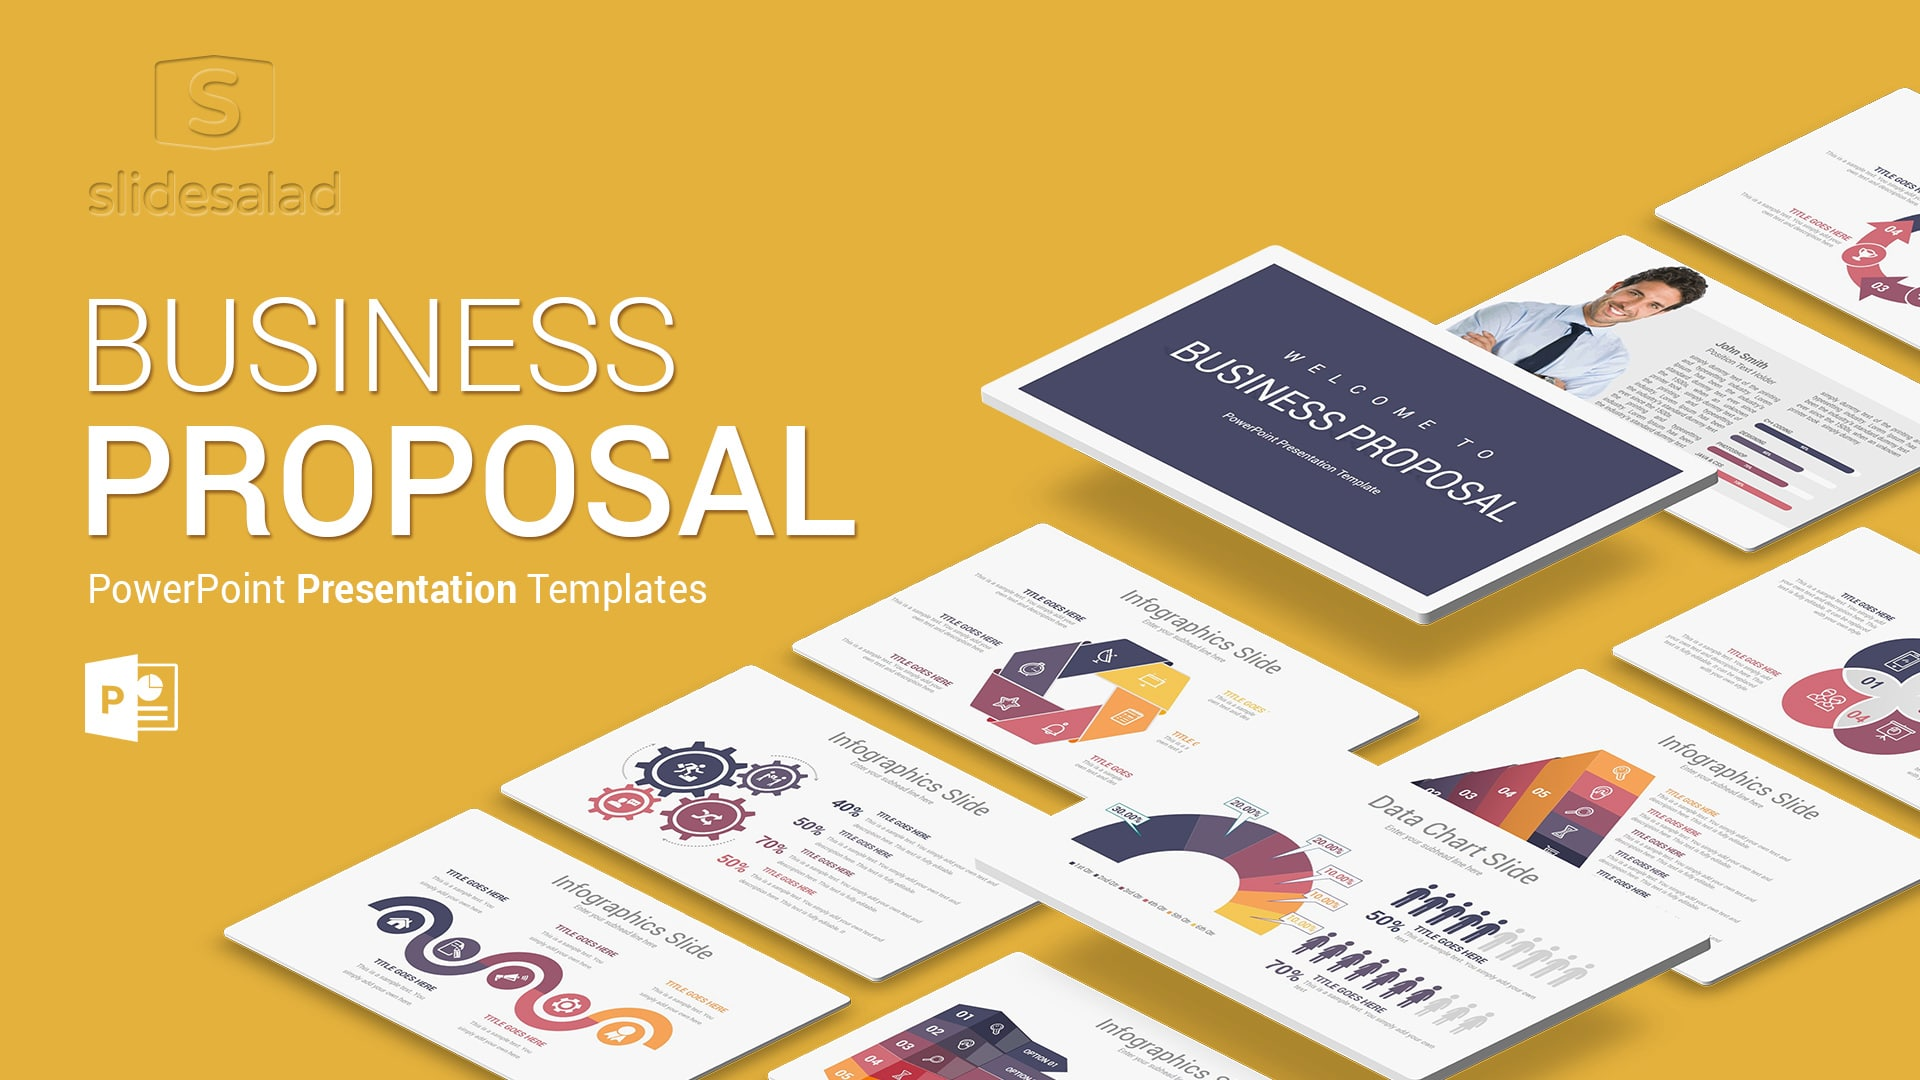 Business Proposal PowerPoint Presentation Template – Amazing Animates PPT Themes